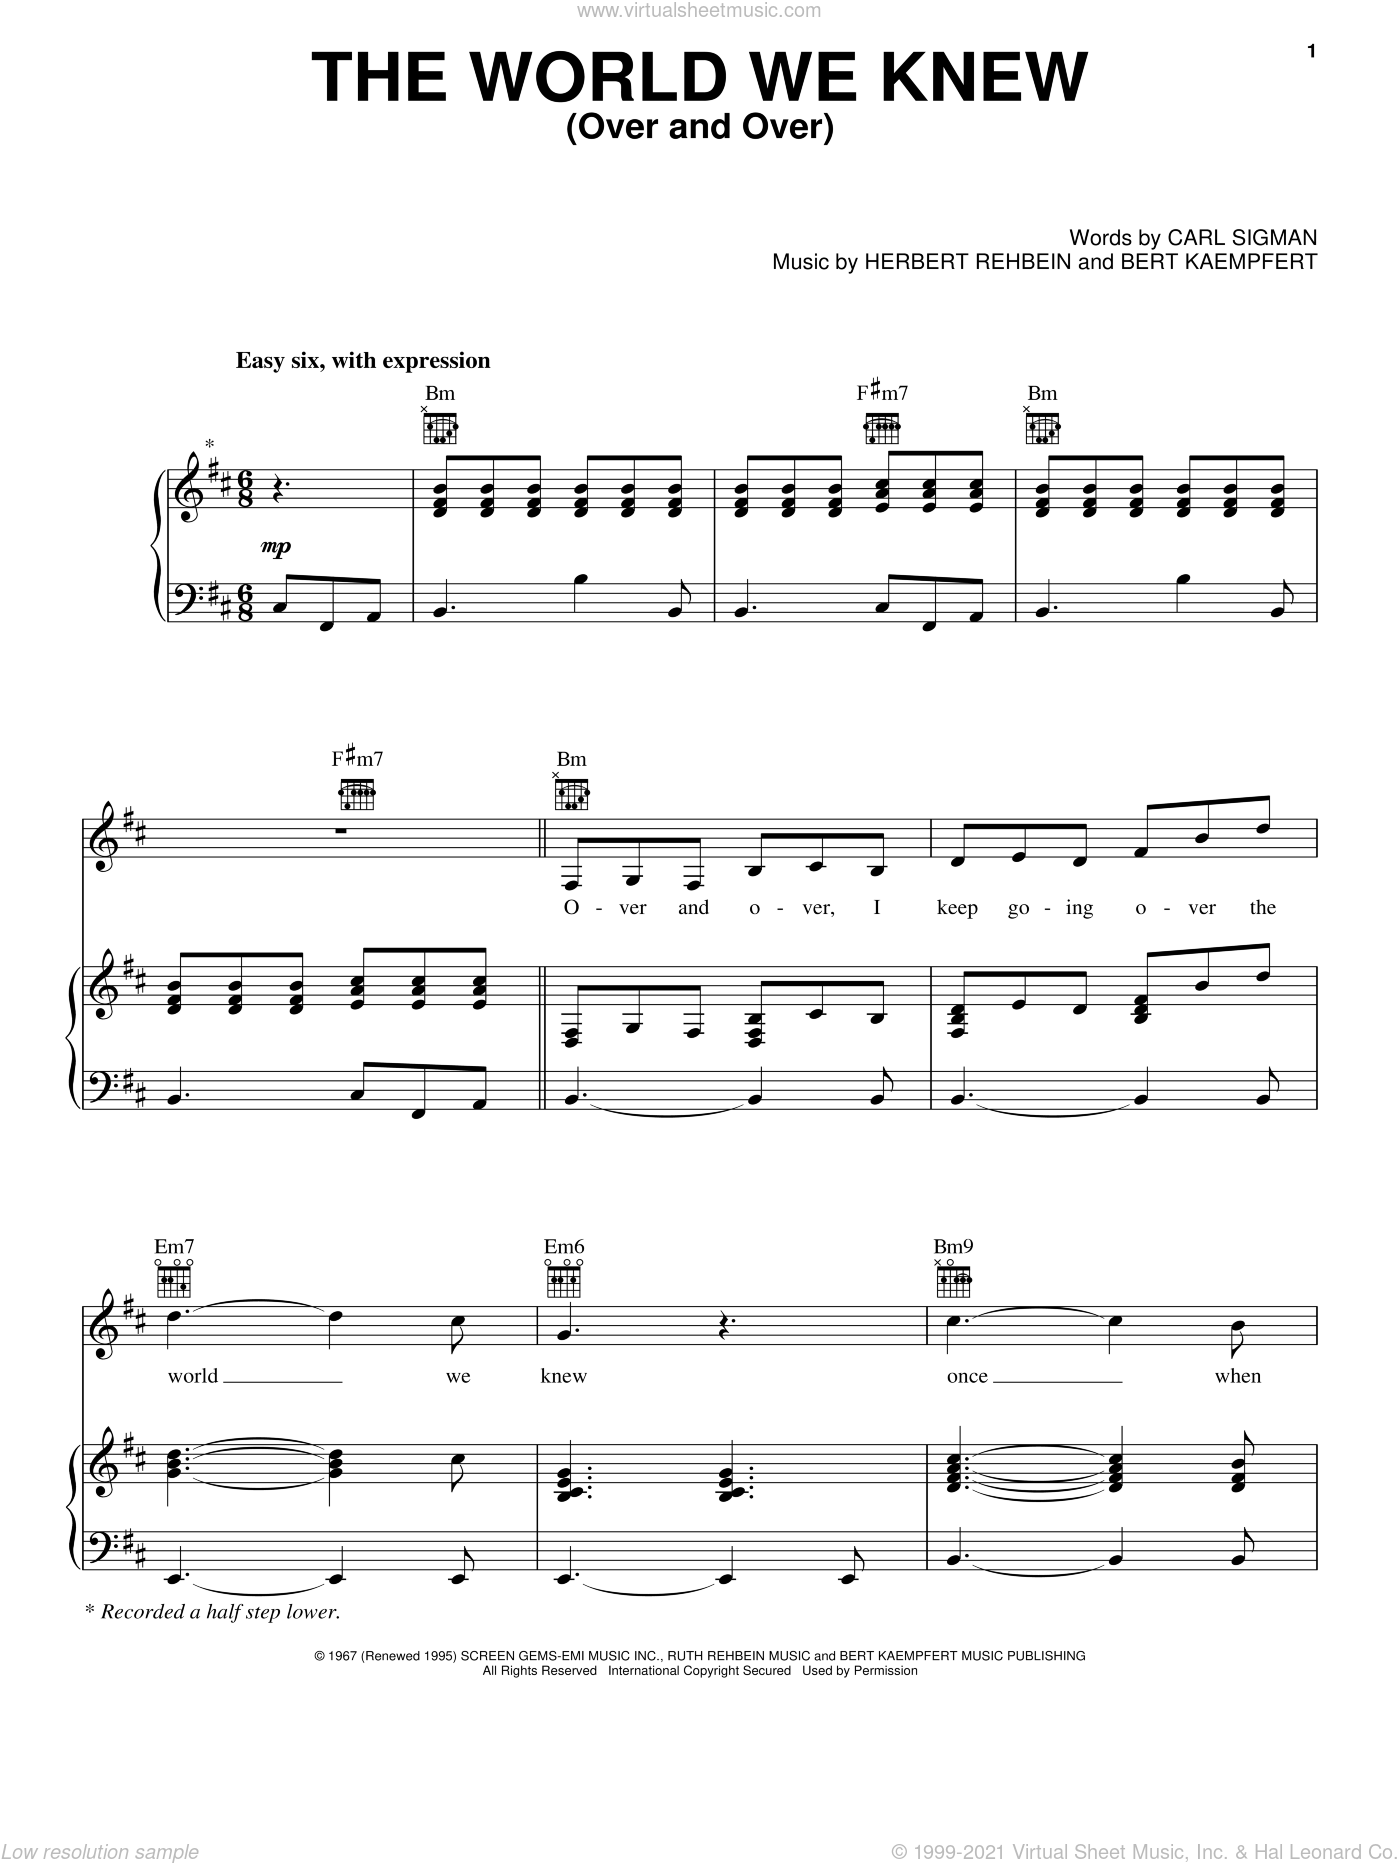 World We Knew (Over And Over) sheet music for voice, piano or guitar by Herbert Rehbein